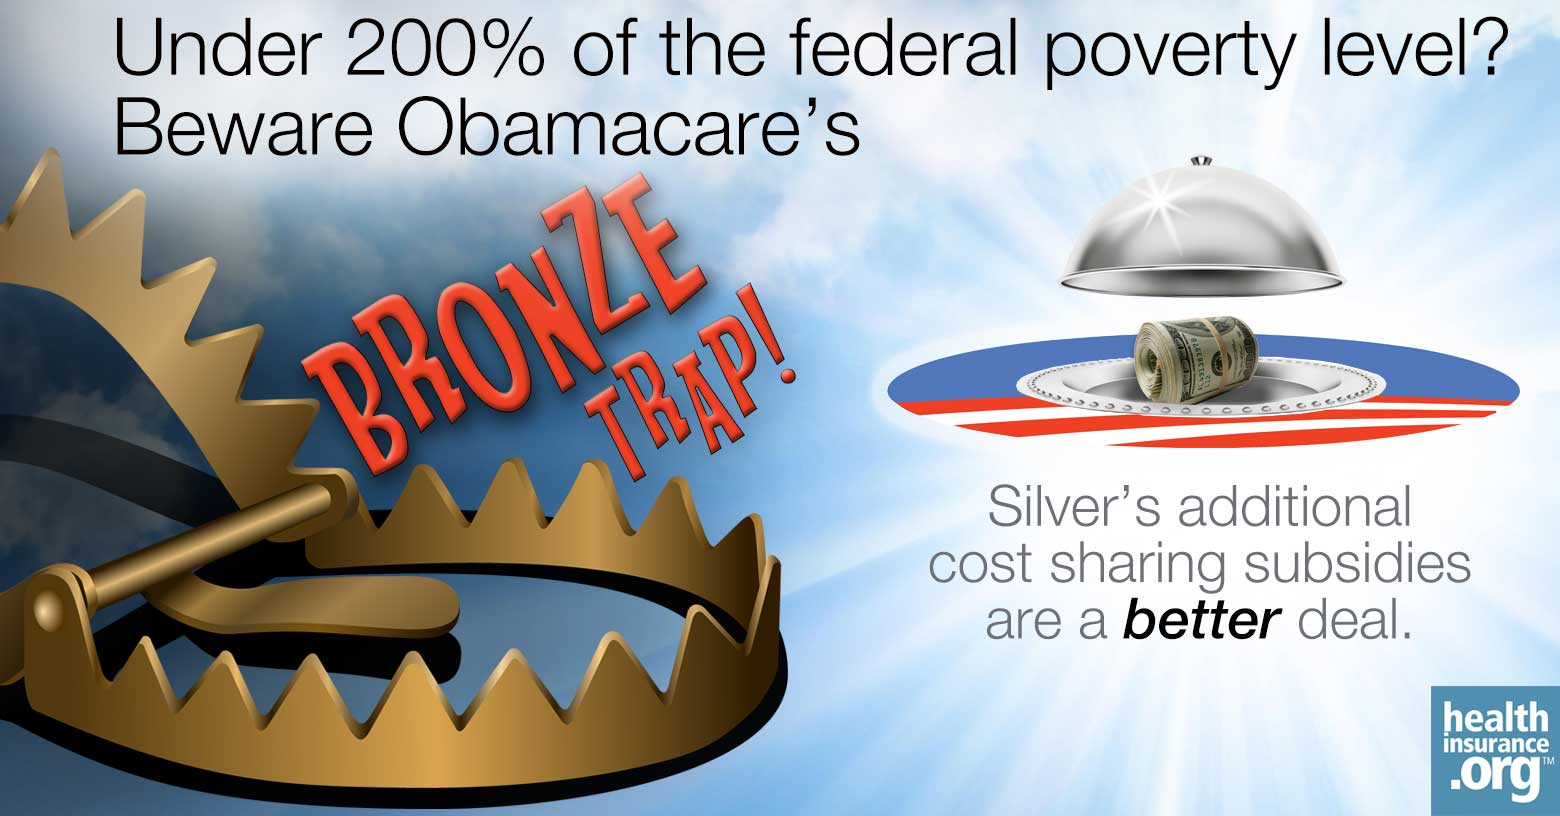 Is Obamacare's 'Bronze trap' widening? photo